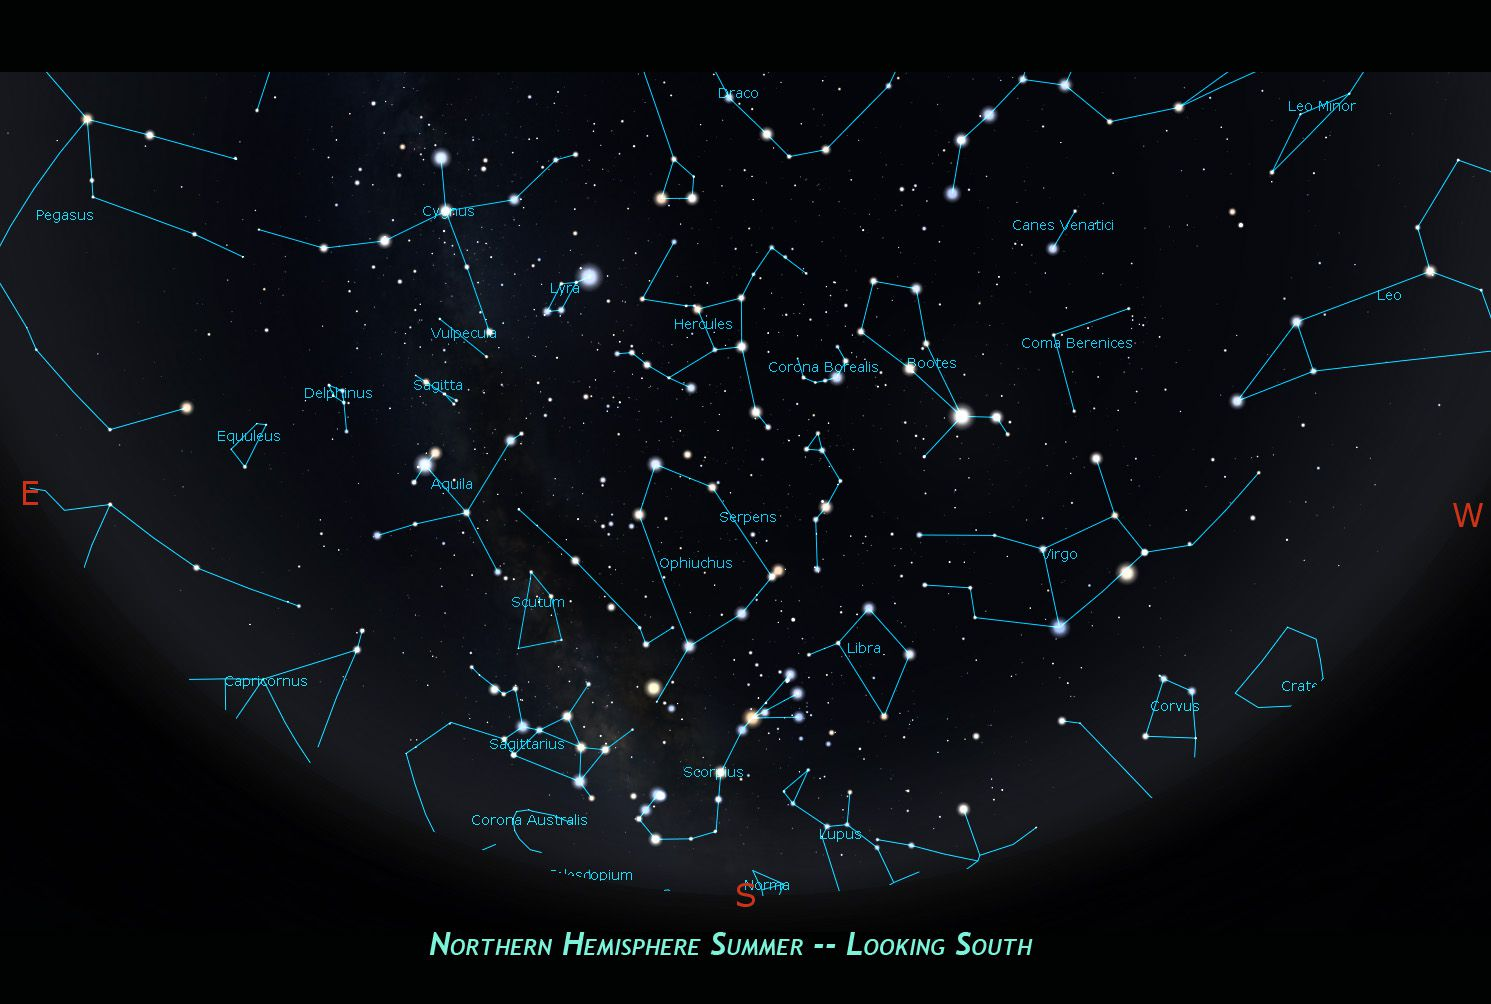 How to Find the Libra Constellation in the Night Sky